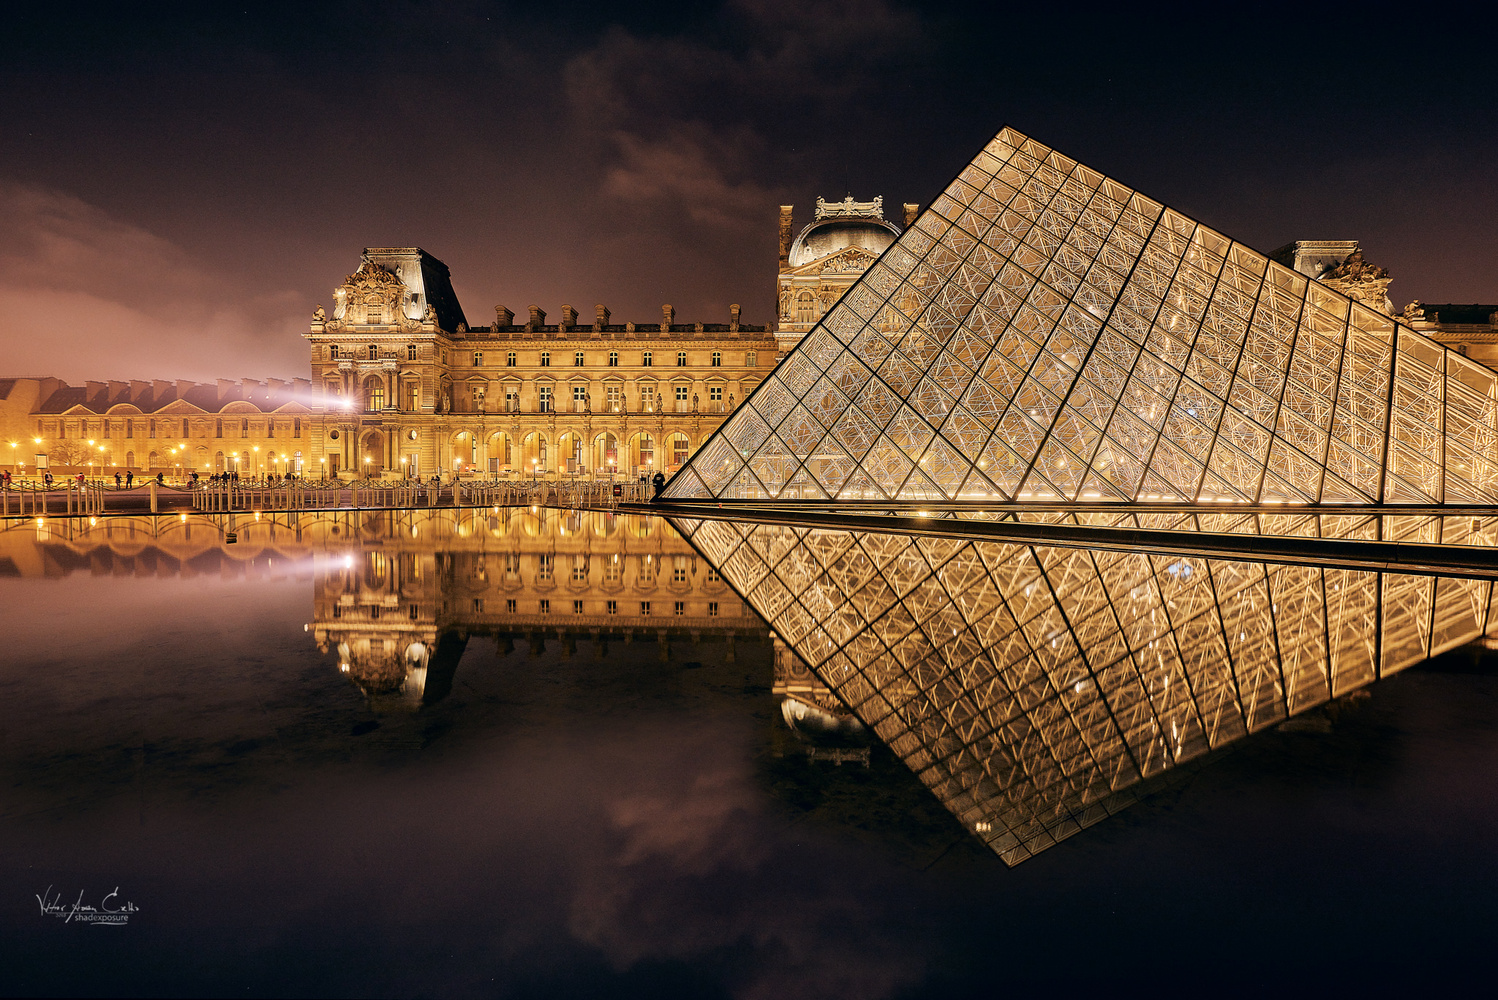 France@Paris - Reflections in the Louvre by Vitor Coelho